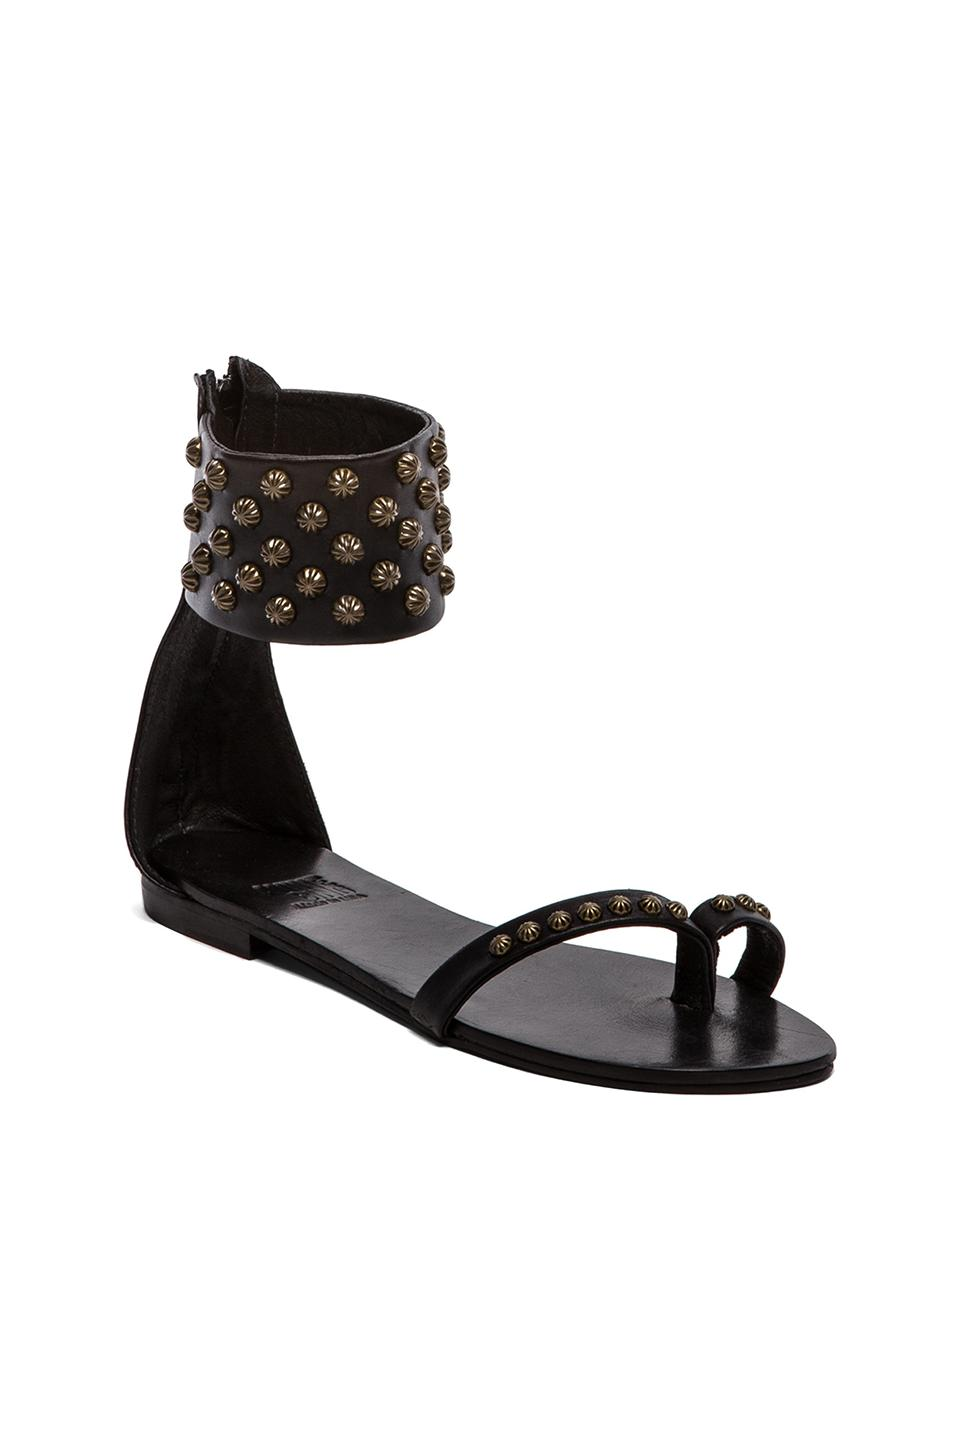 ANINE BING Ankle Cuff Sandals in Black | REVOLVE